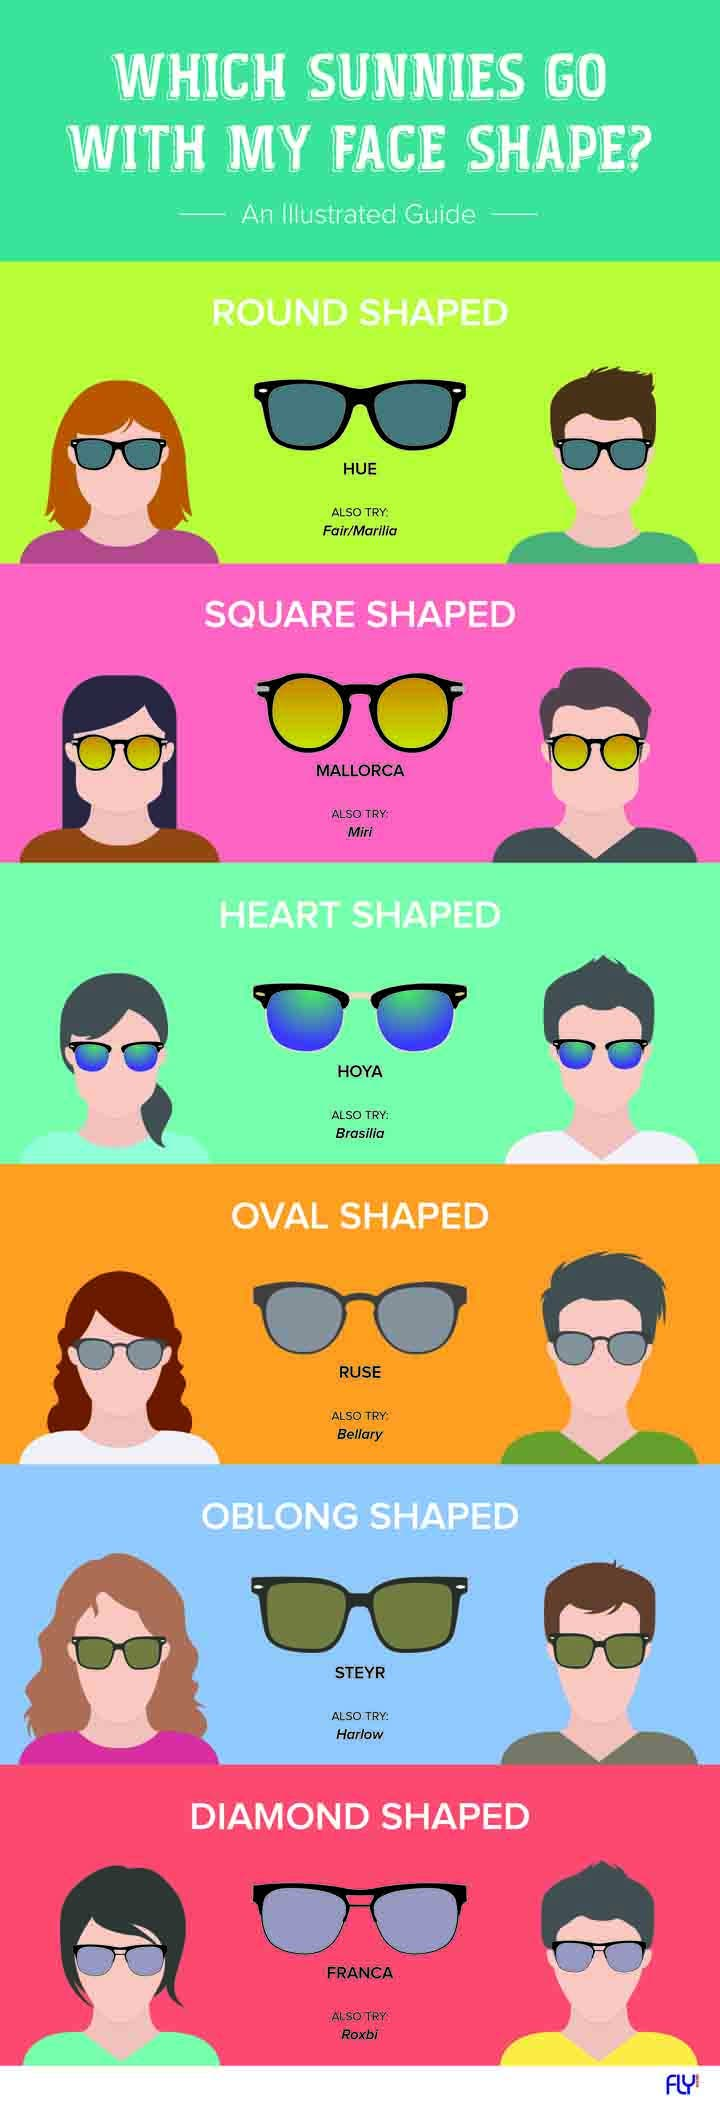 How to Find the Perfect Sunnies Frame for Your Face Shape